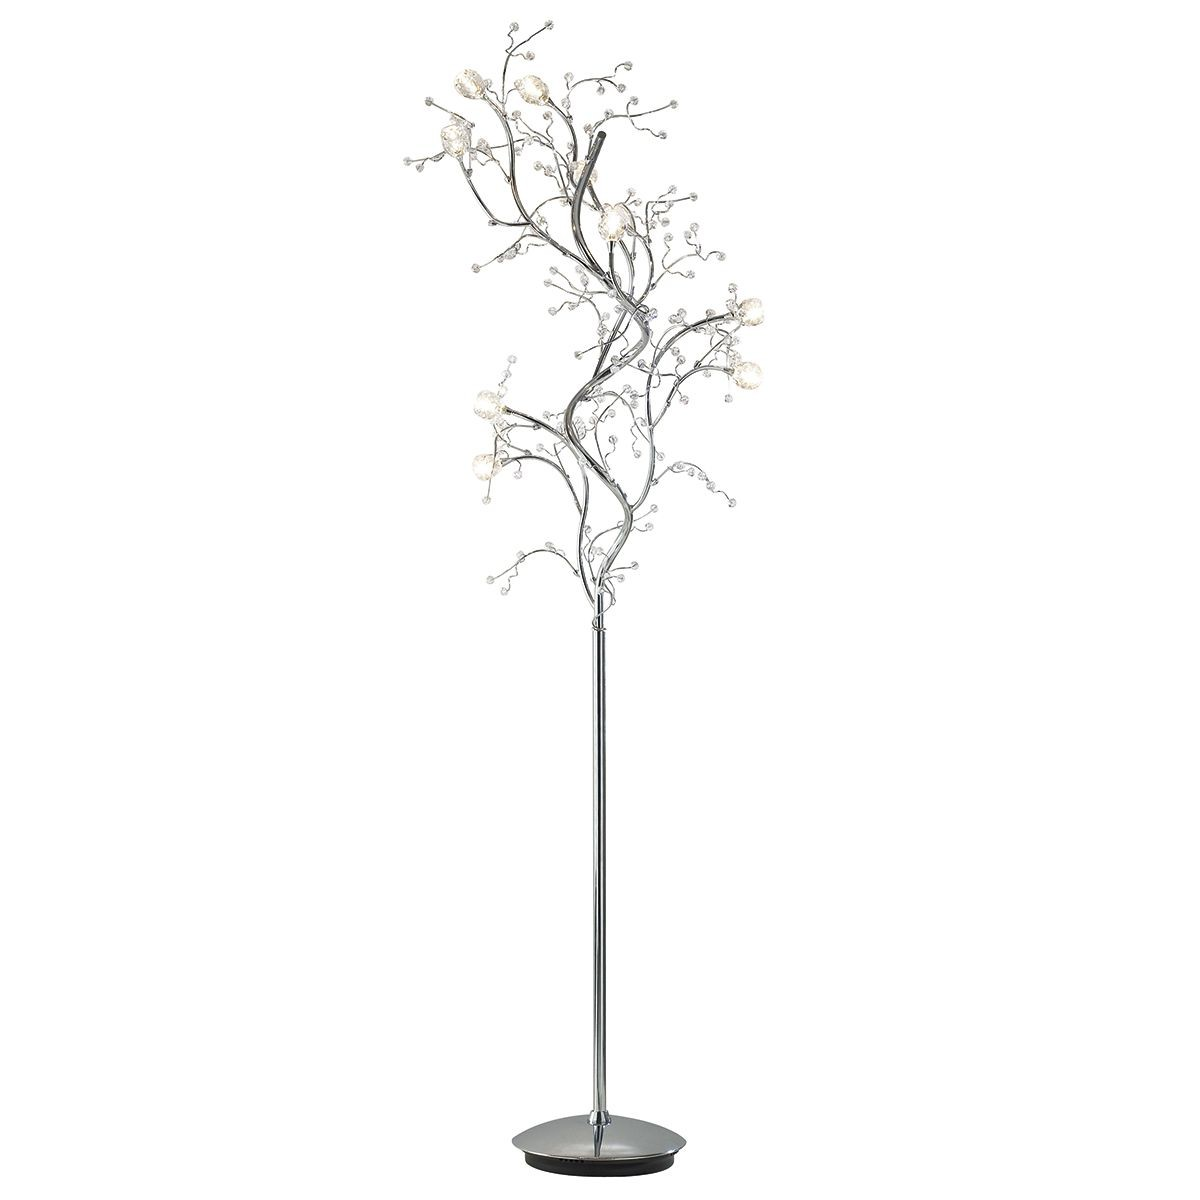 Gazetta Floor Lamp